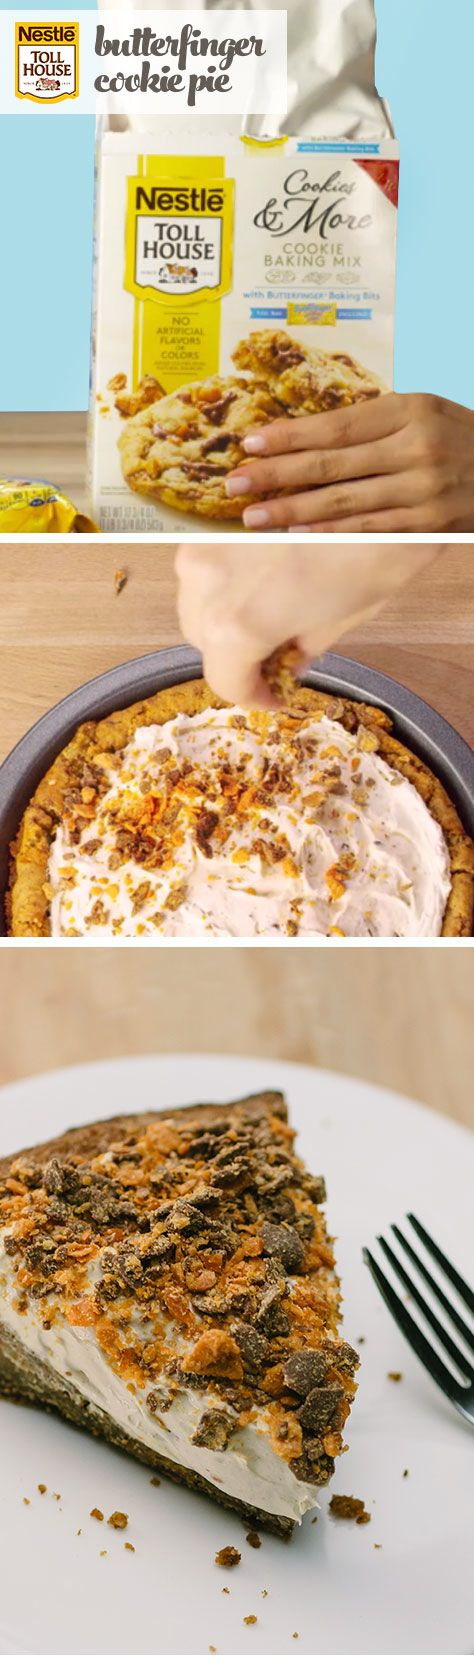 From candy bar to cookie pie, this recipe makes a tasty Halloween treat. Combine ingredients with NESTLE® TOLL HOUSE® Cookies & More Baking Mix with Butterfinger® Baking Bits, then bake for 18-22 minutes to create your cookie crust. In another bowl, mix your filling with rich NESTLE® BUTTERFINGER® Baking Bits. When the crust has cooled, spread the filling over it and crumble the remaining Butterfinger bits across the top. Refrigerate before serving for a silky homemade treat.